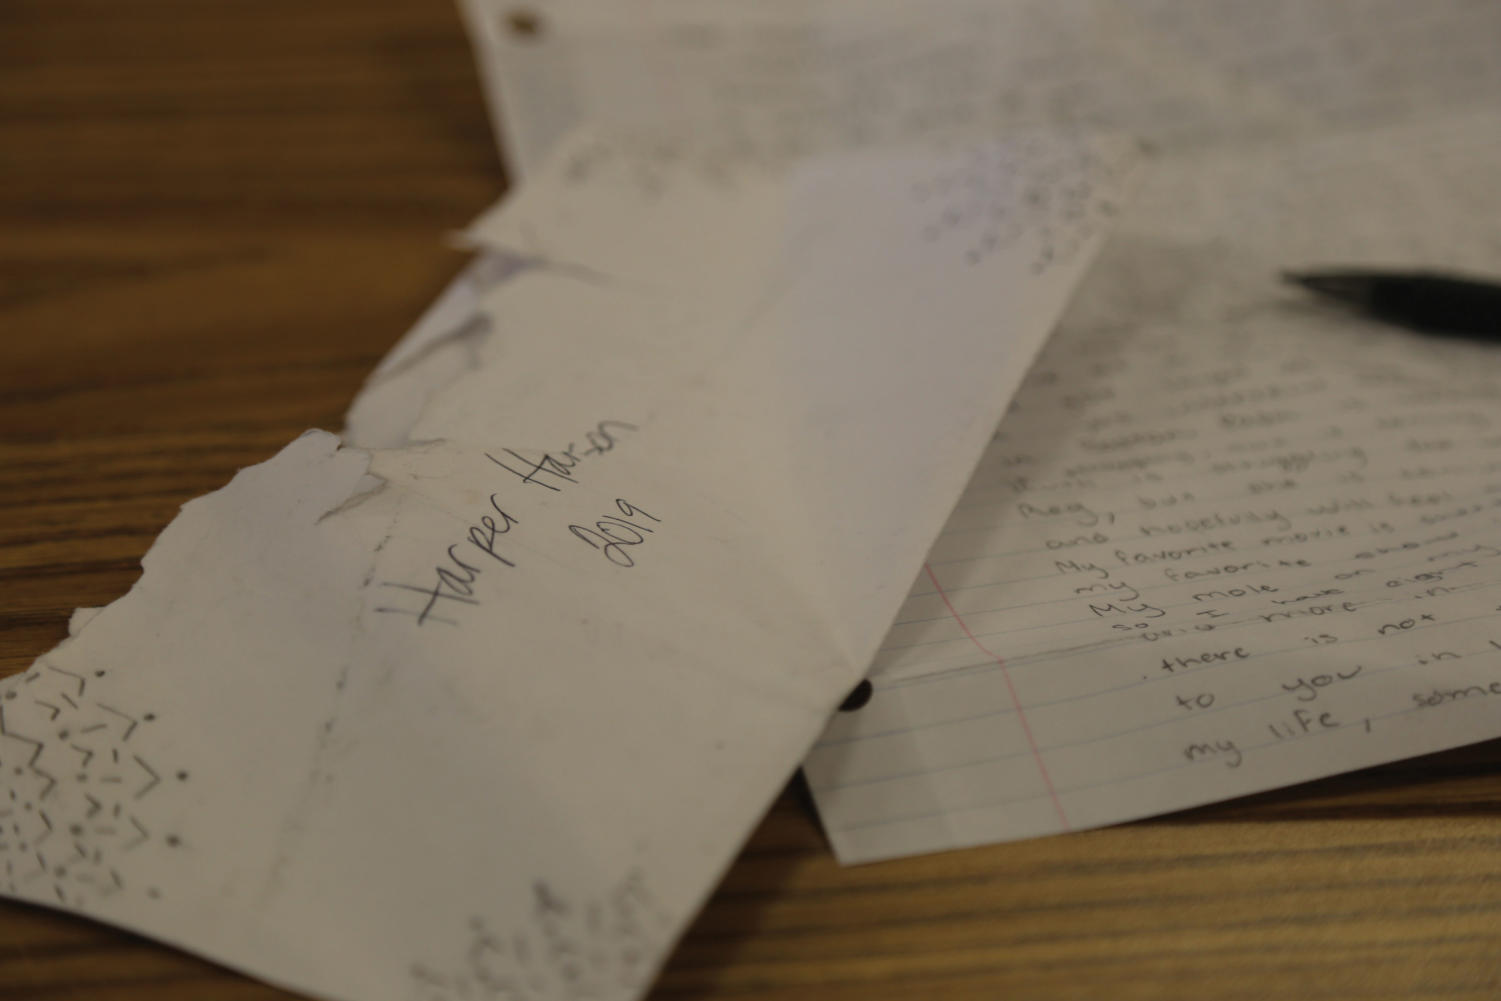 LETTER FROM THE PAST: Each freshman, in their Creek 101 class, is instructed to write a letter to their senior selves. The letters allow the seniors to rediscover a younger version of themselves and reflect on how they've changed, or not.